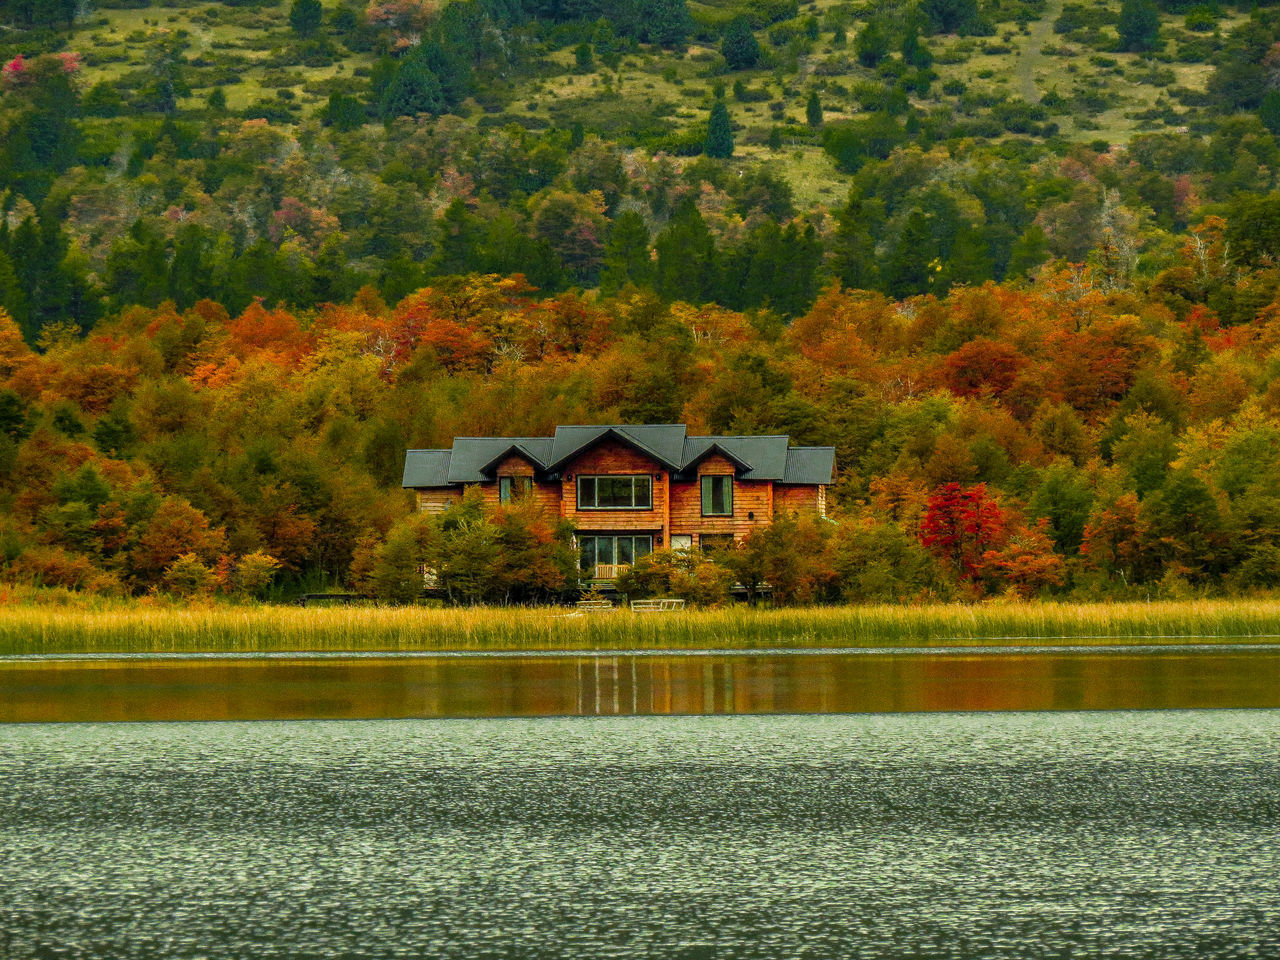 Architecture Auntumn Auntumn Colors Autumn Beauty In Nature Building Exterior Built Structure Canonphotography Day EyeEm Gallery EyeEmDiversity EyeEmNewHere Lake Mountain Nature No People Outdoors Scenics Sky Tranquility Tree Water